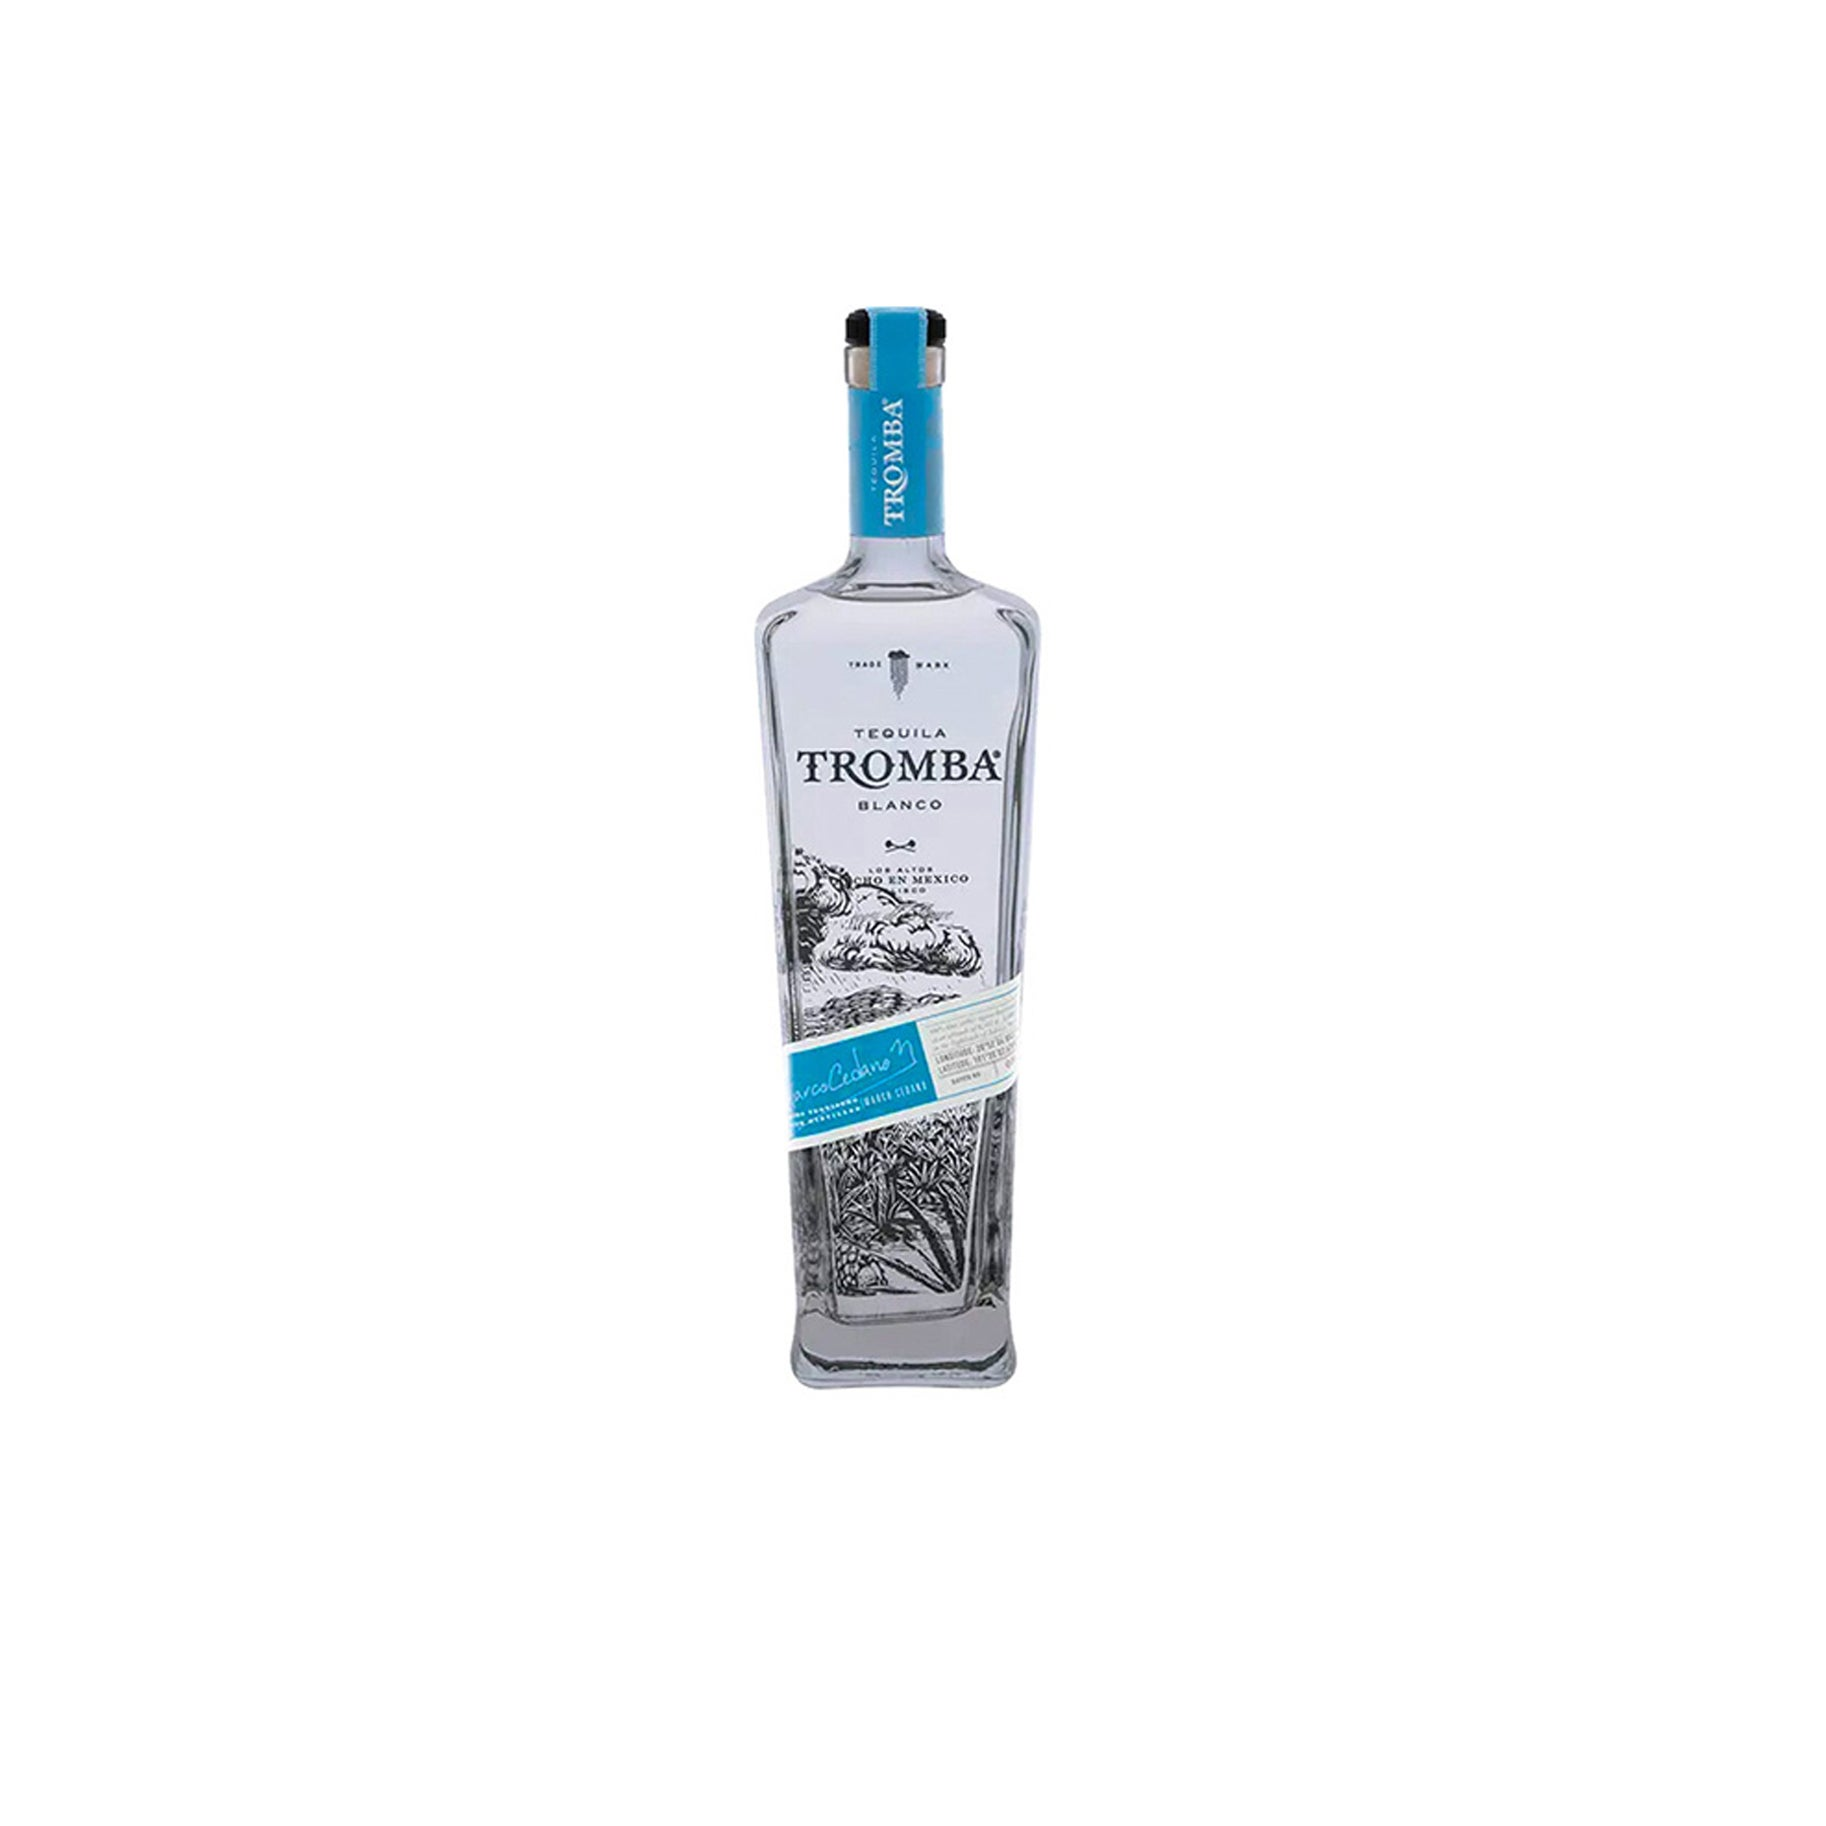 The Best Sipping Tequila Option: Tromba Blanco